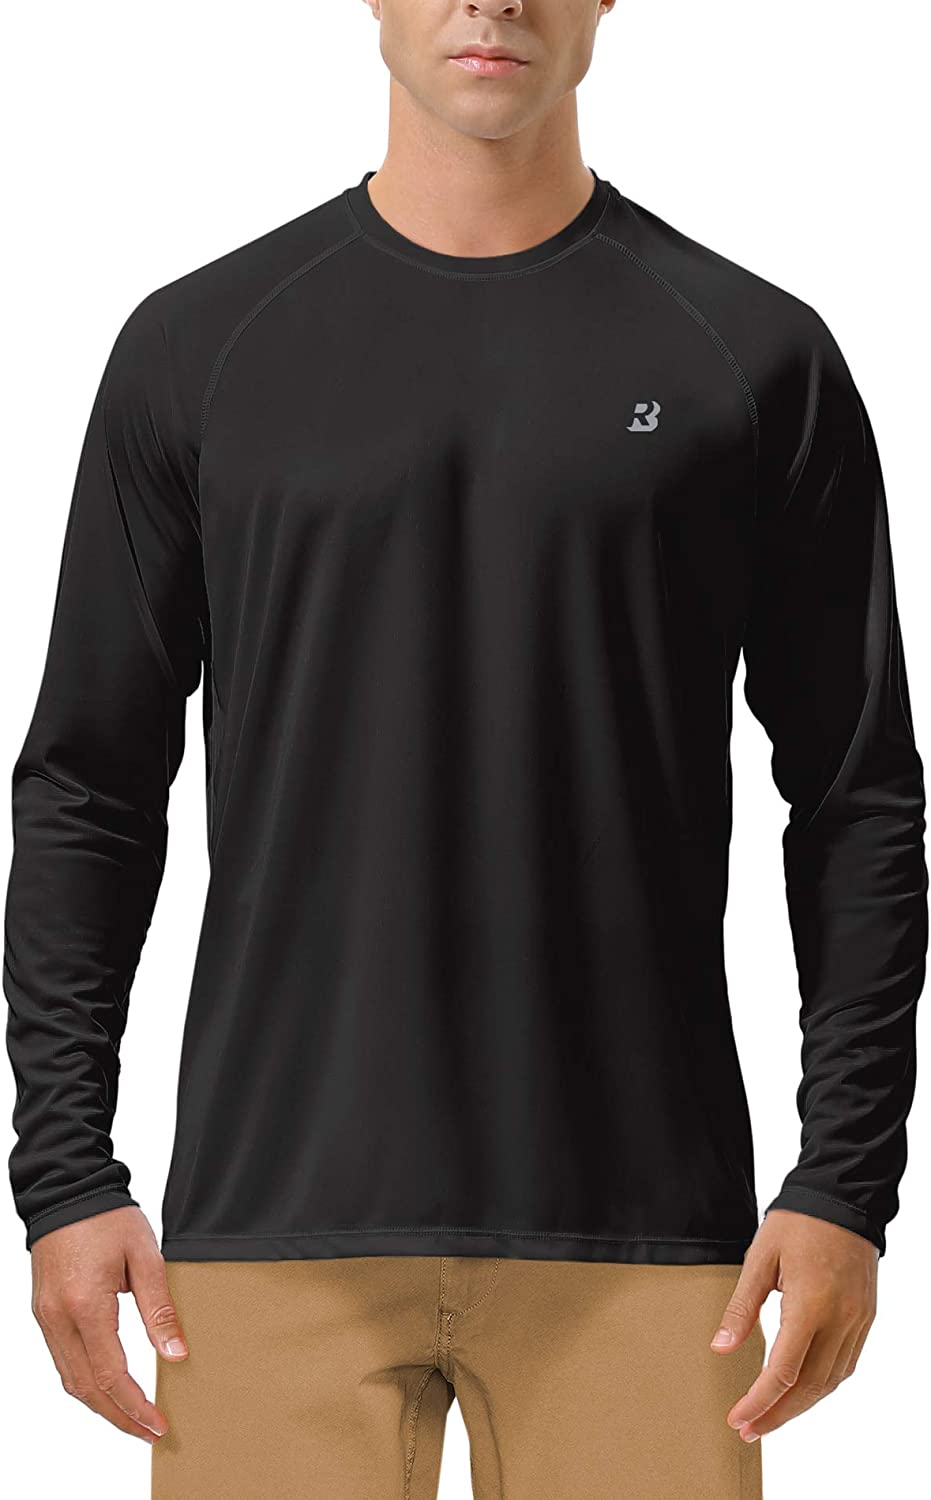 Roadbox Men's Long Sleeve Sun Protection UPF 50+ UV Outdoor Dri-fit T-Shirt Rashguard for Running, Fishing, Hiking